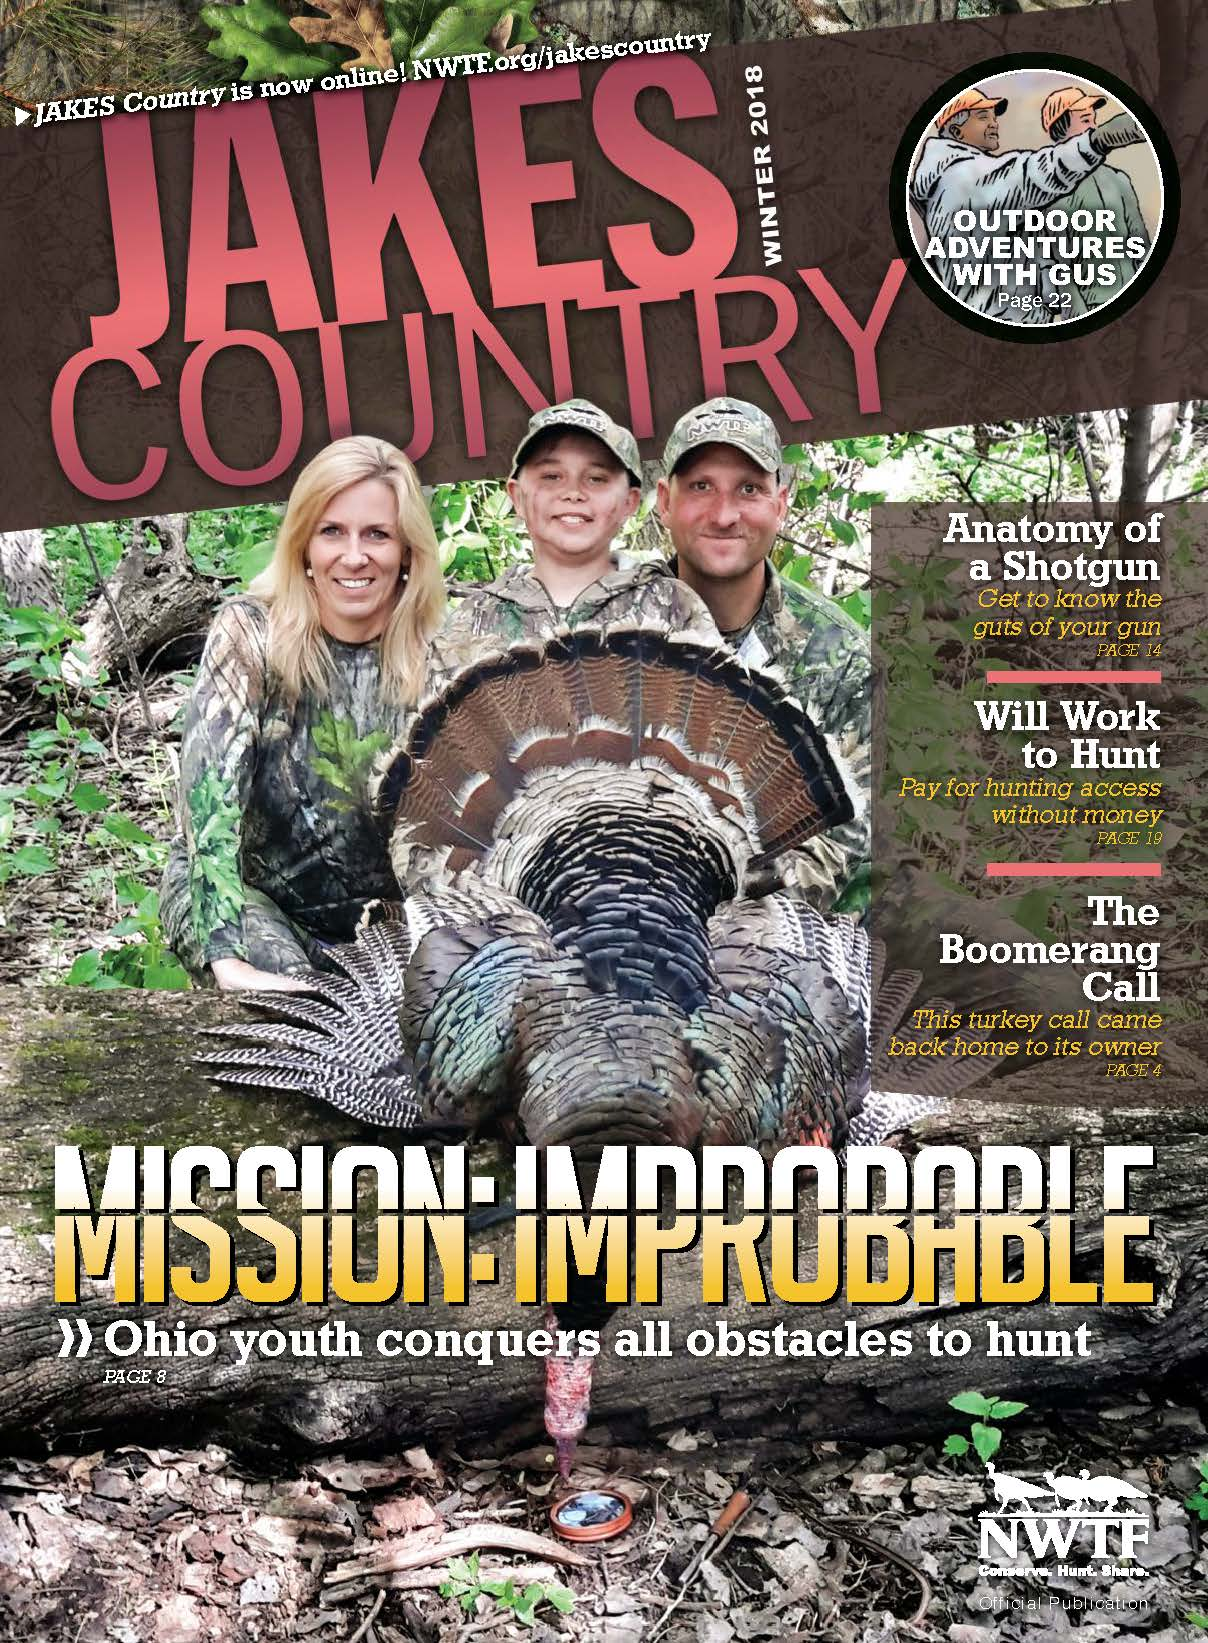 Braedan made the Front Cover of the NWTF's Jakes Country Magazine. - Blessed to be part of the NWTF.